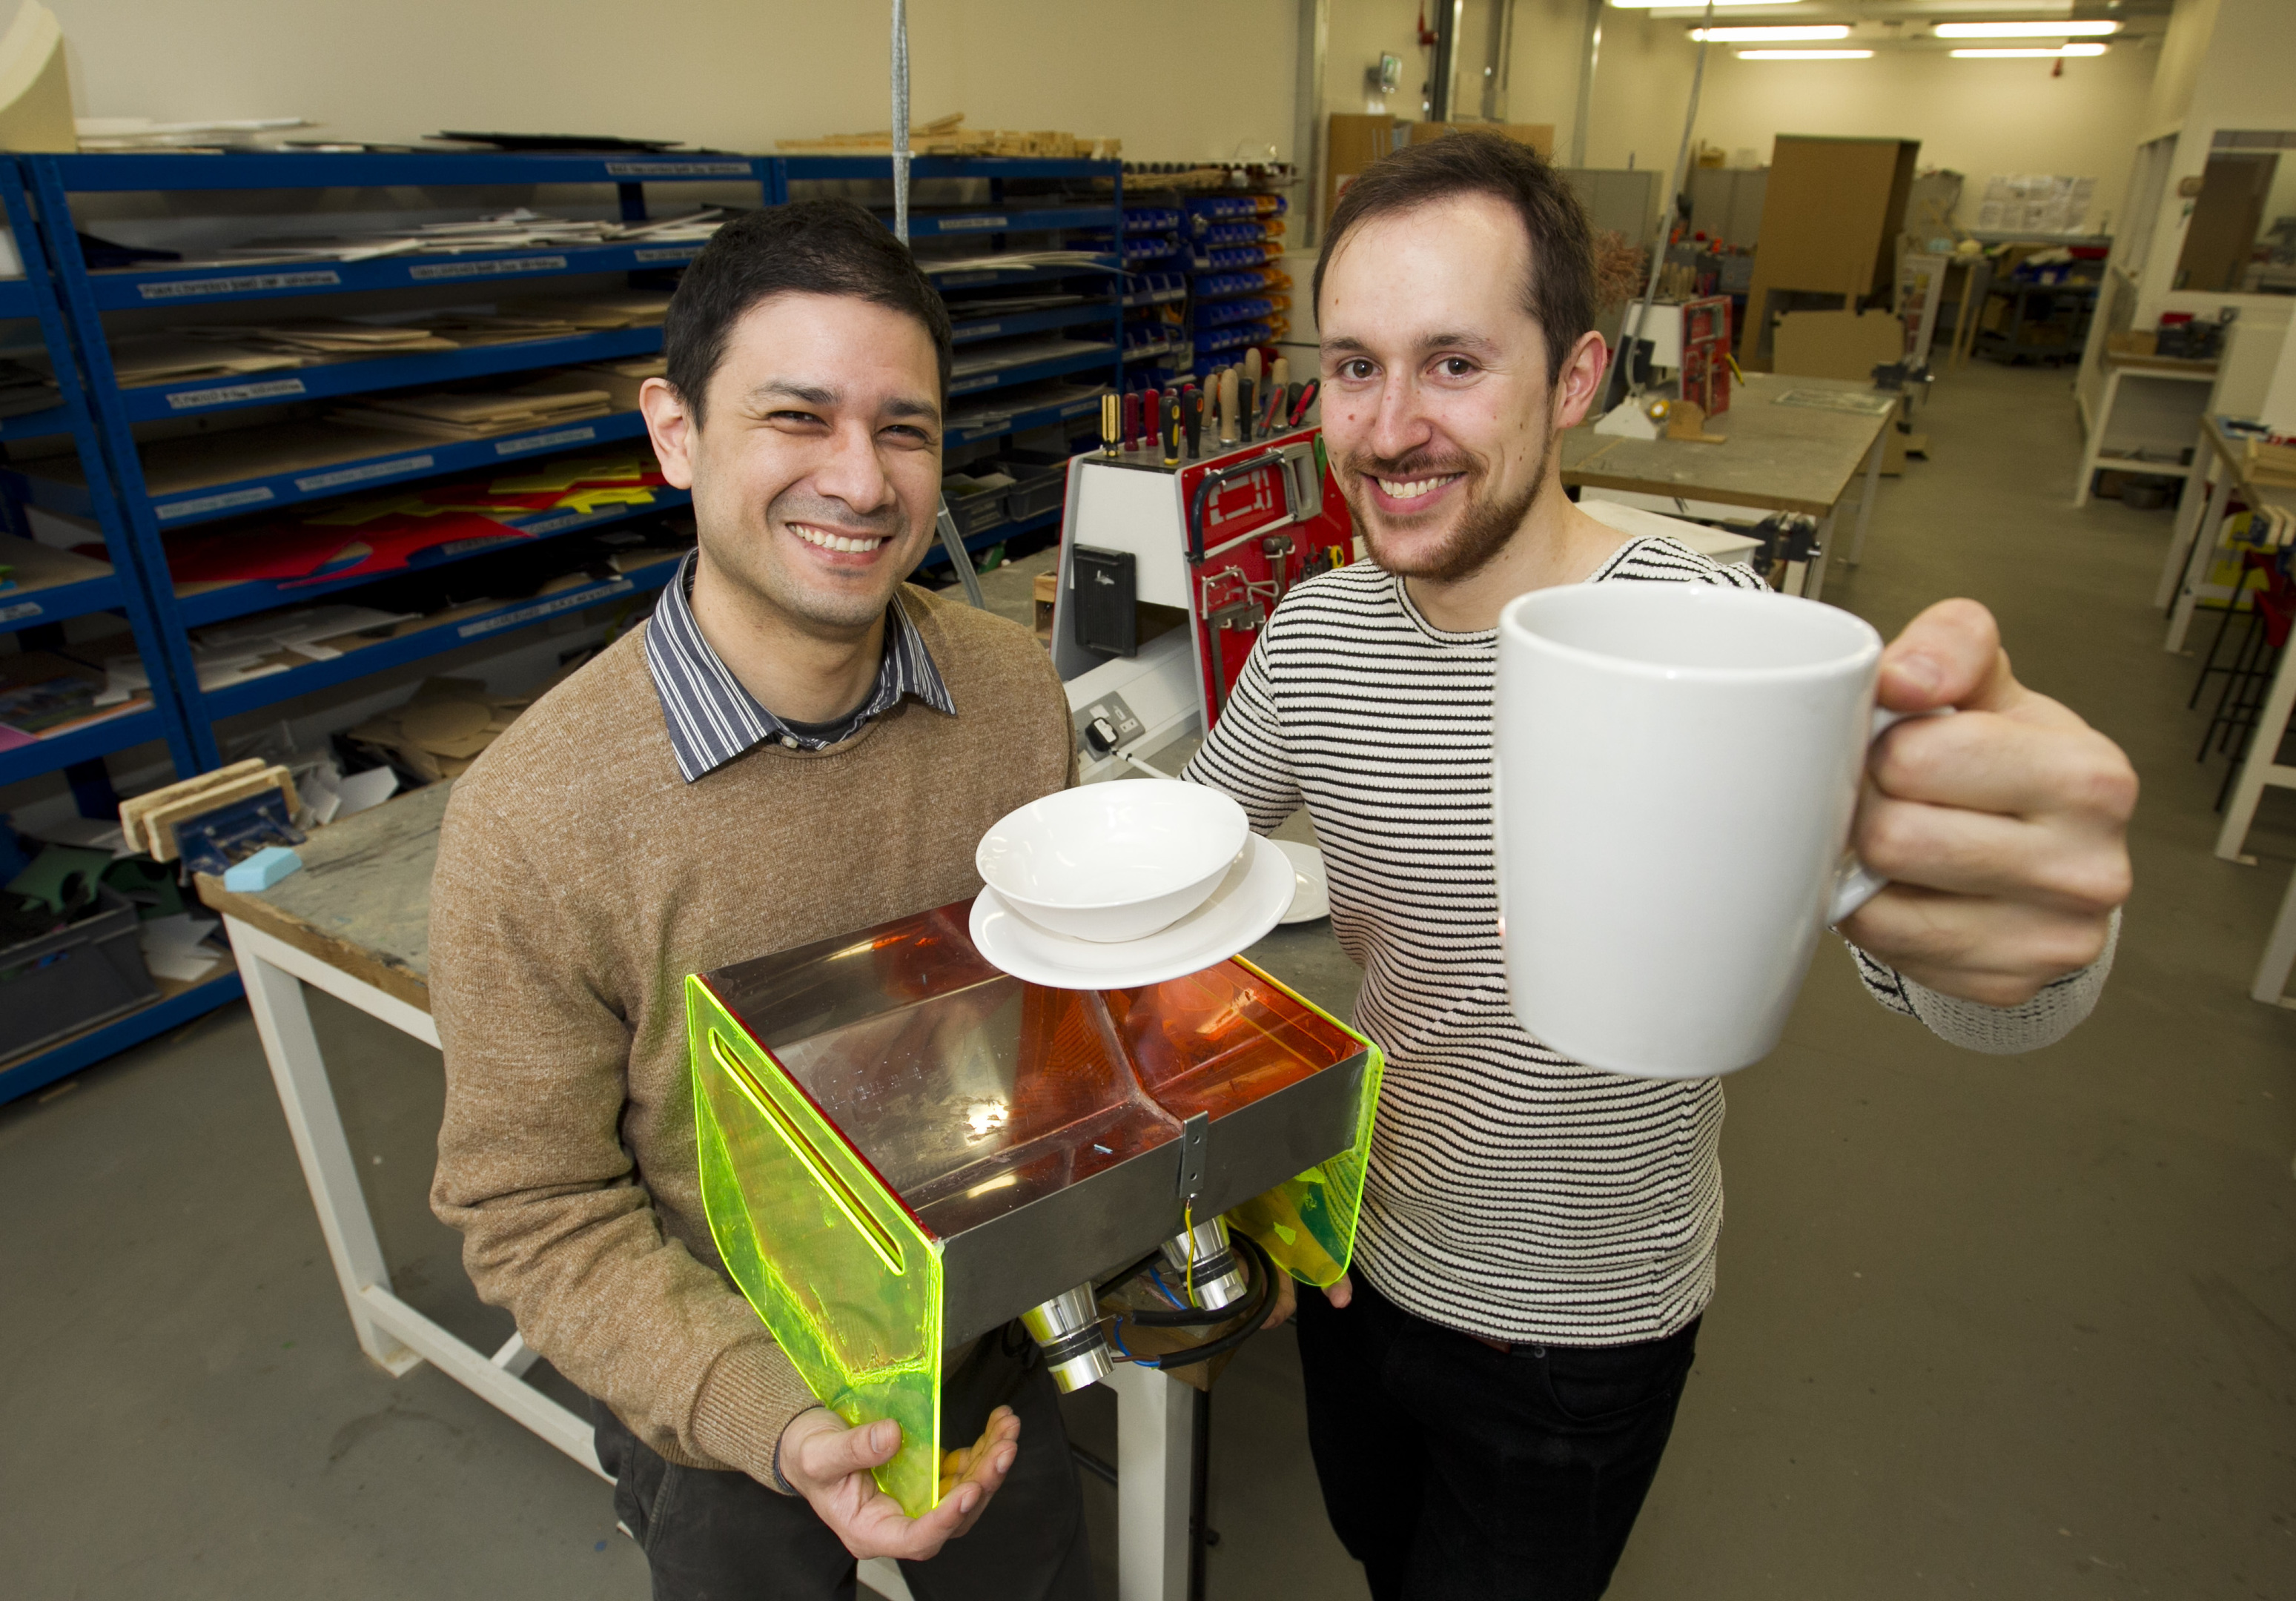 Francisco Carreno and Pierre Guglielmi with their creation (Andrew Cawley / DC Thomson)